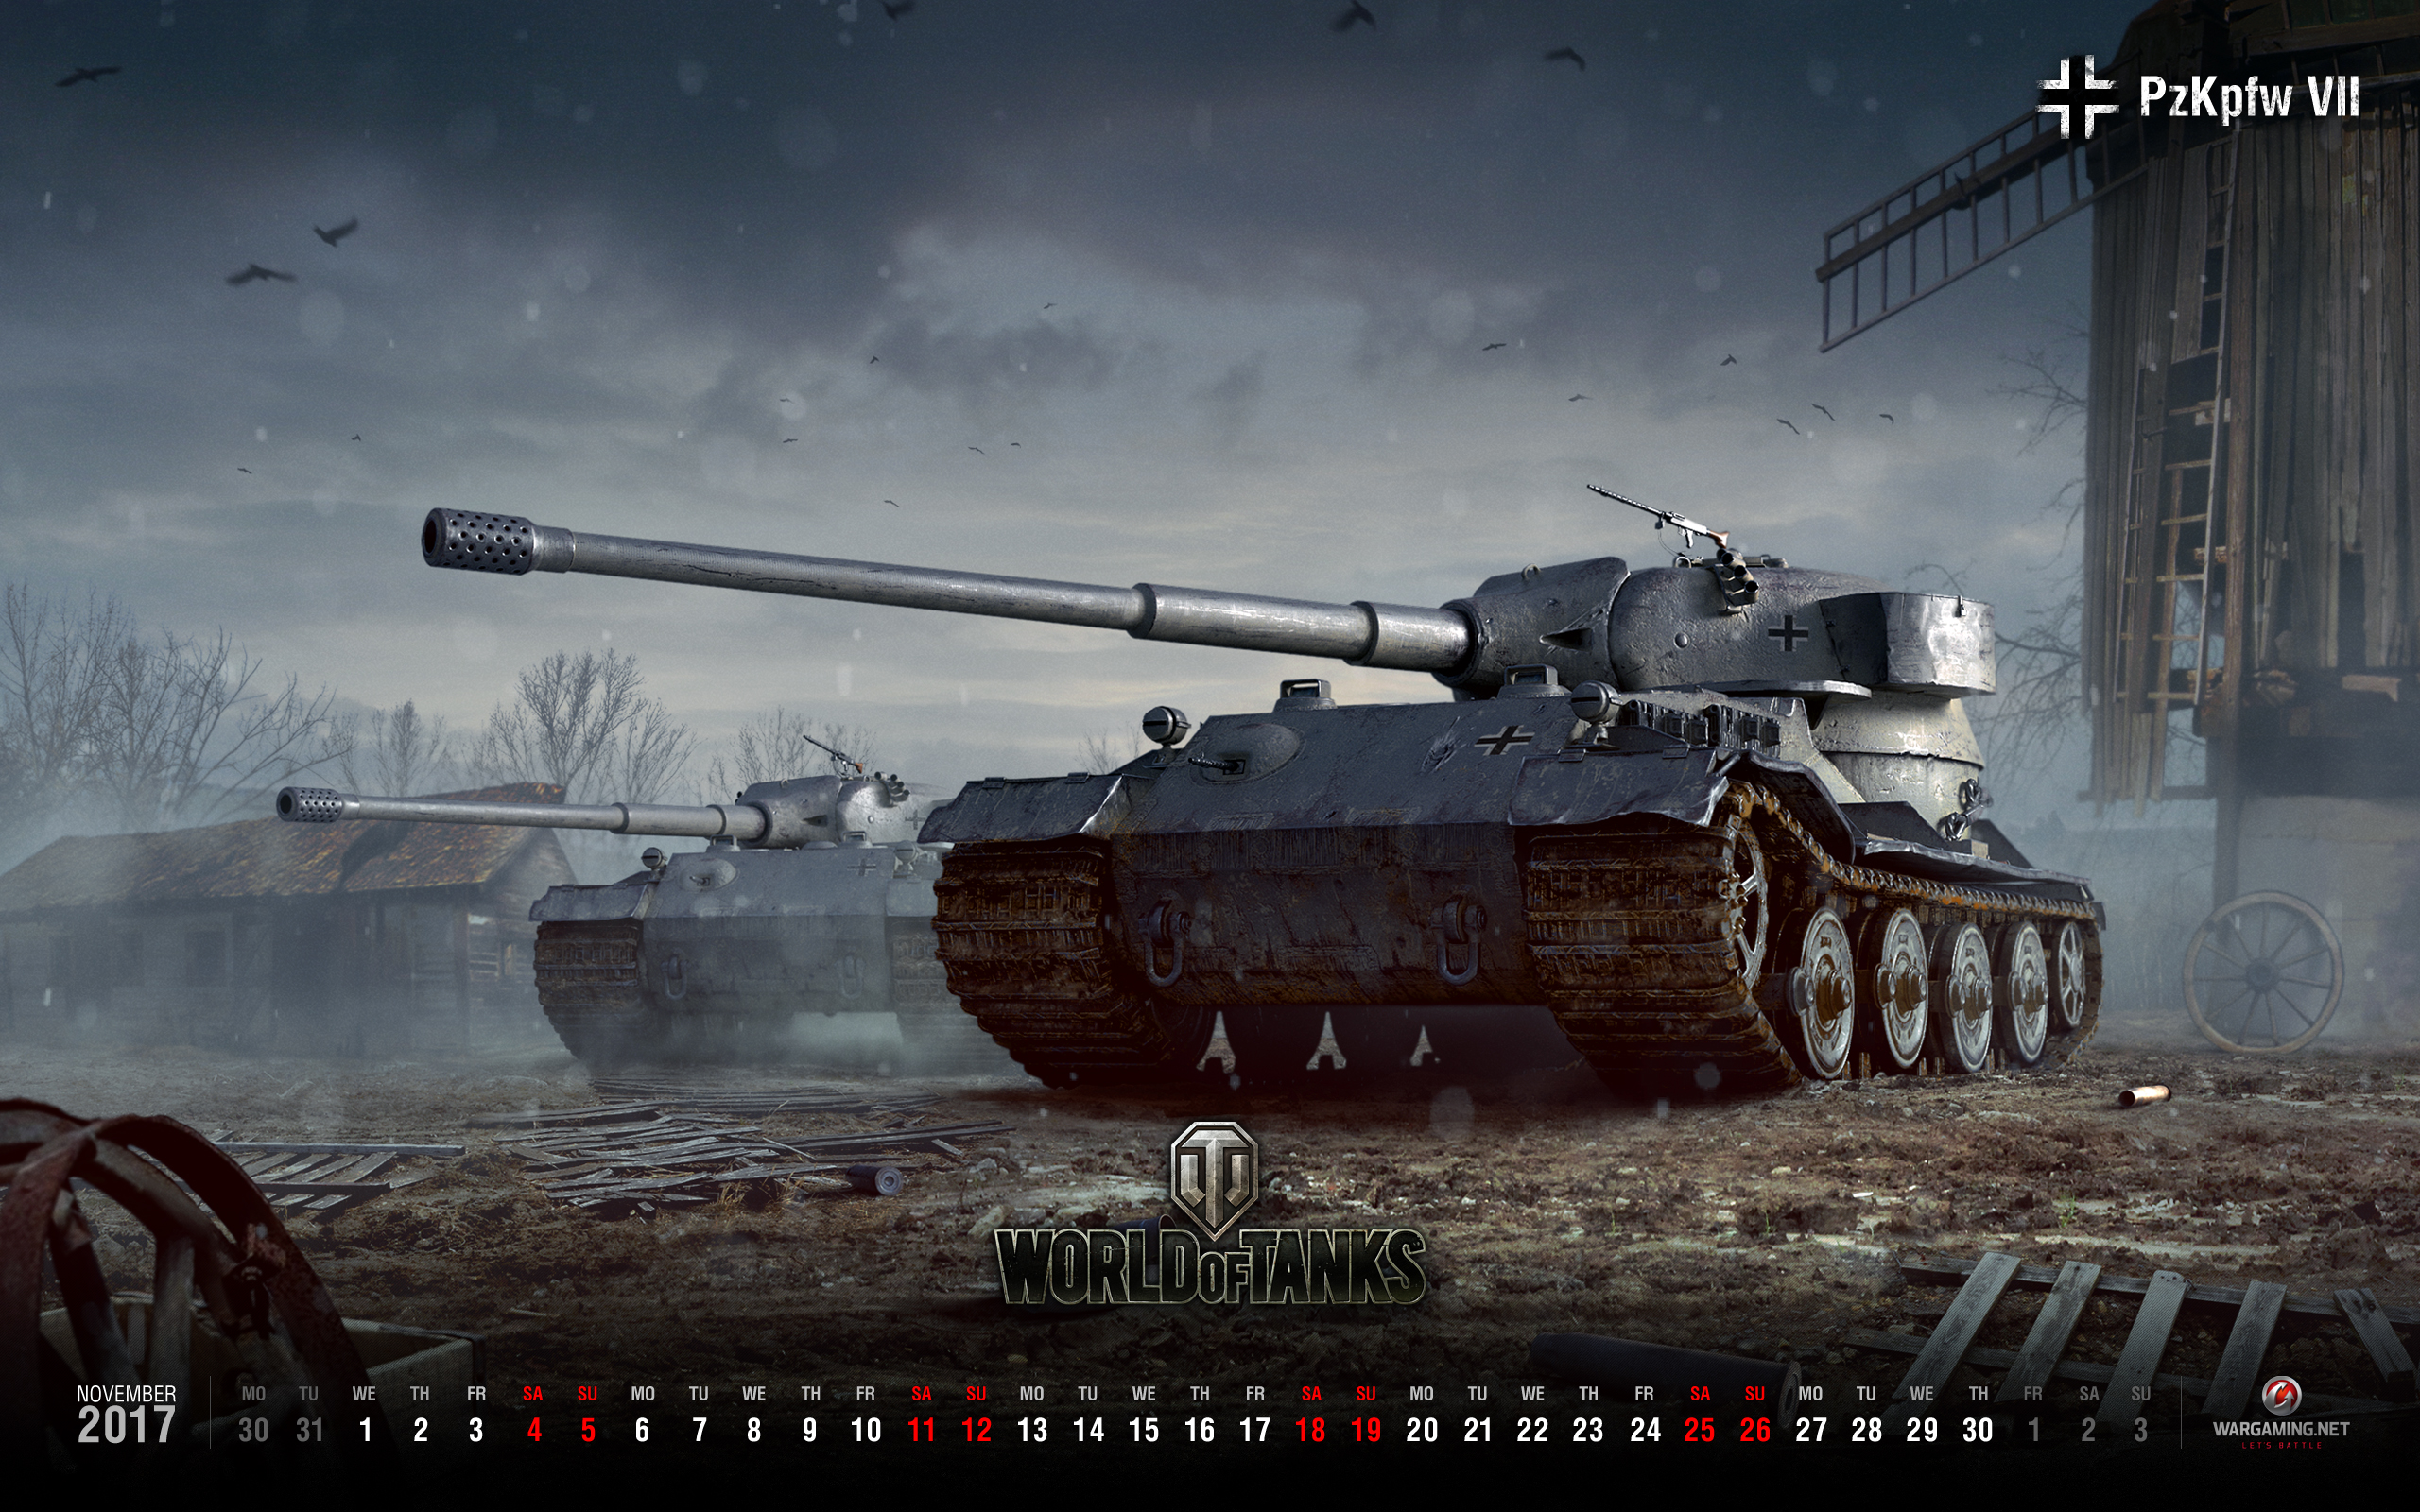 Two Wallpapers For November 2017 General News World Of Tanks